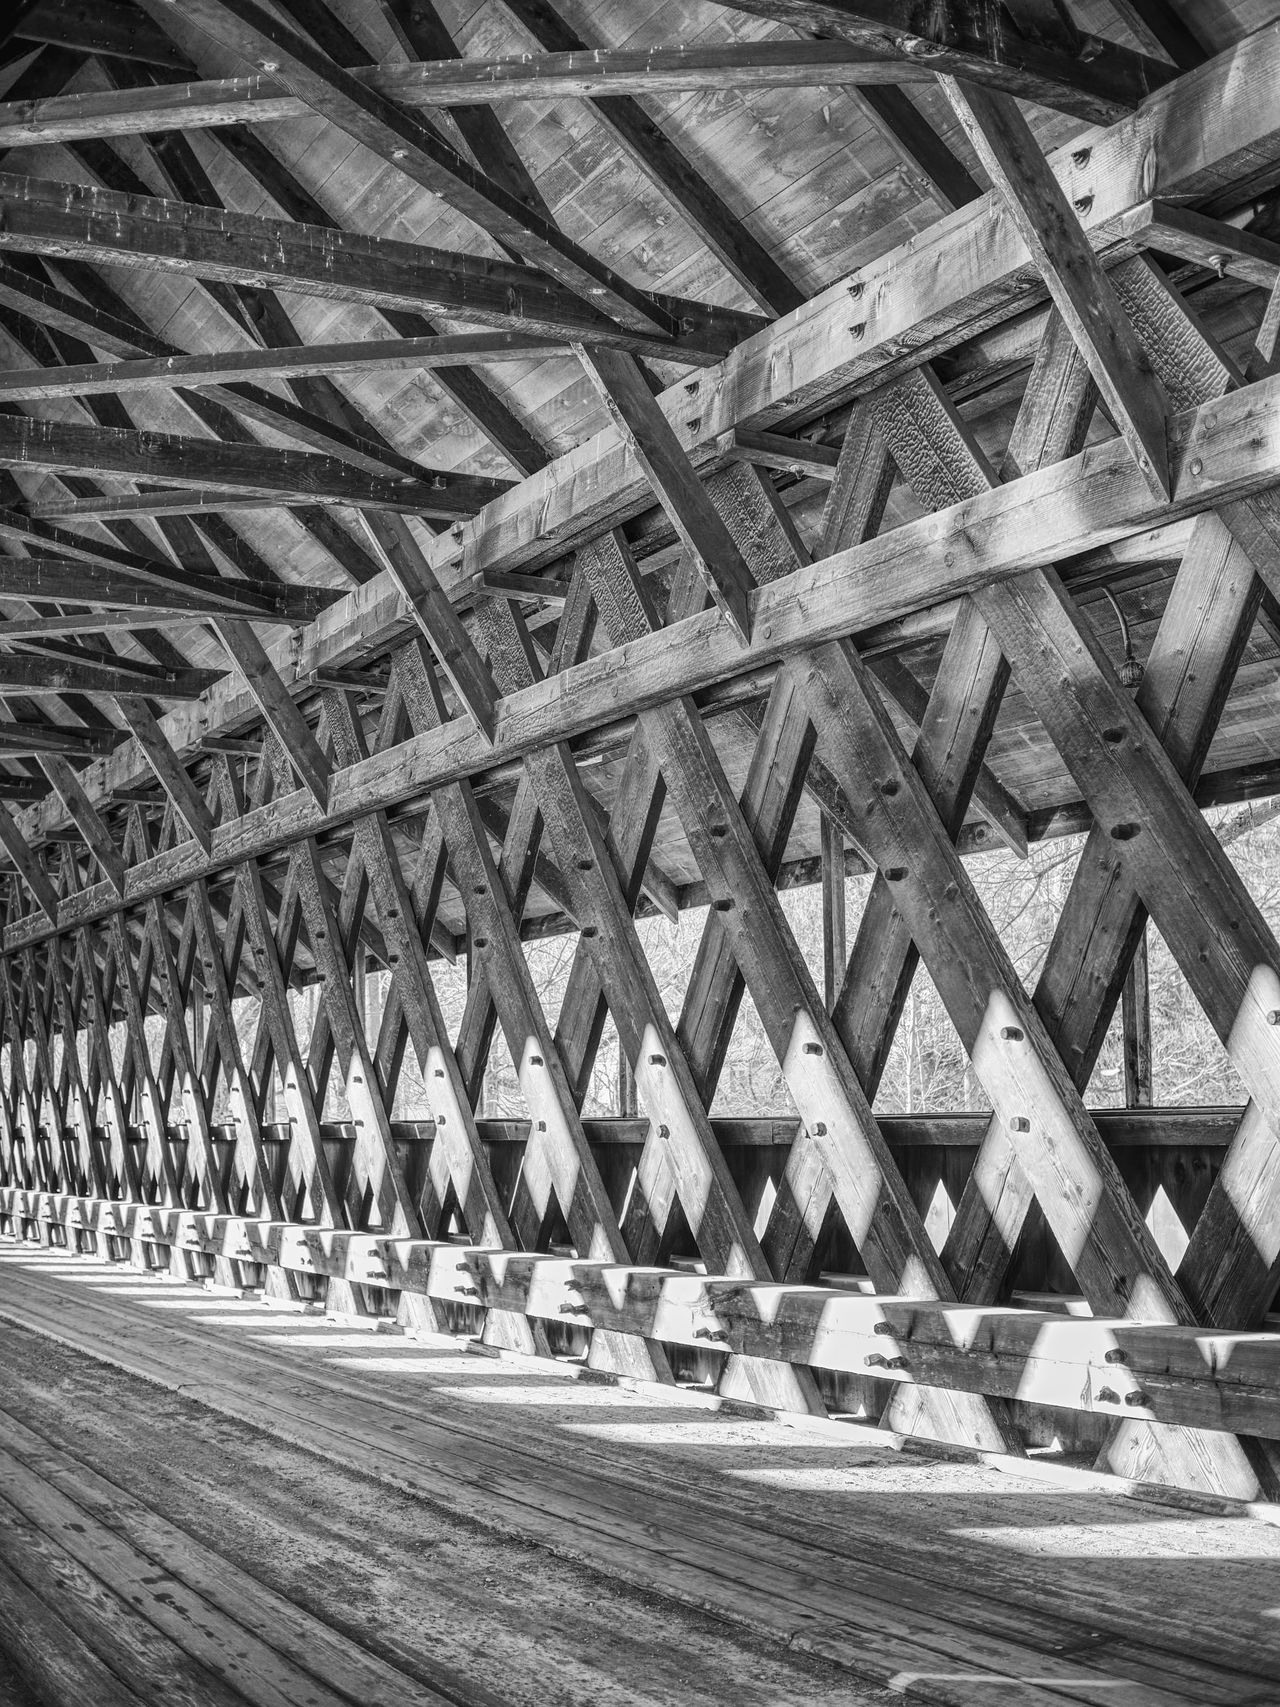 Architecture Beams Blackandwhite Bridge - Man Made Structure Built Structure Connection Day No People Outdoors Roof Beam Street Transportation Underneath Wooden